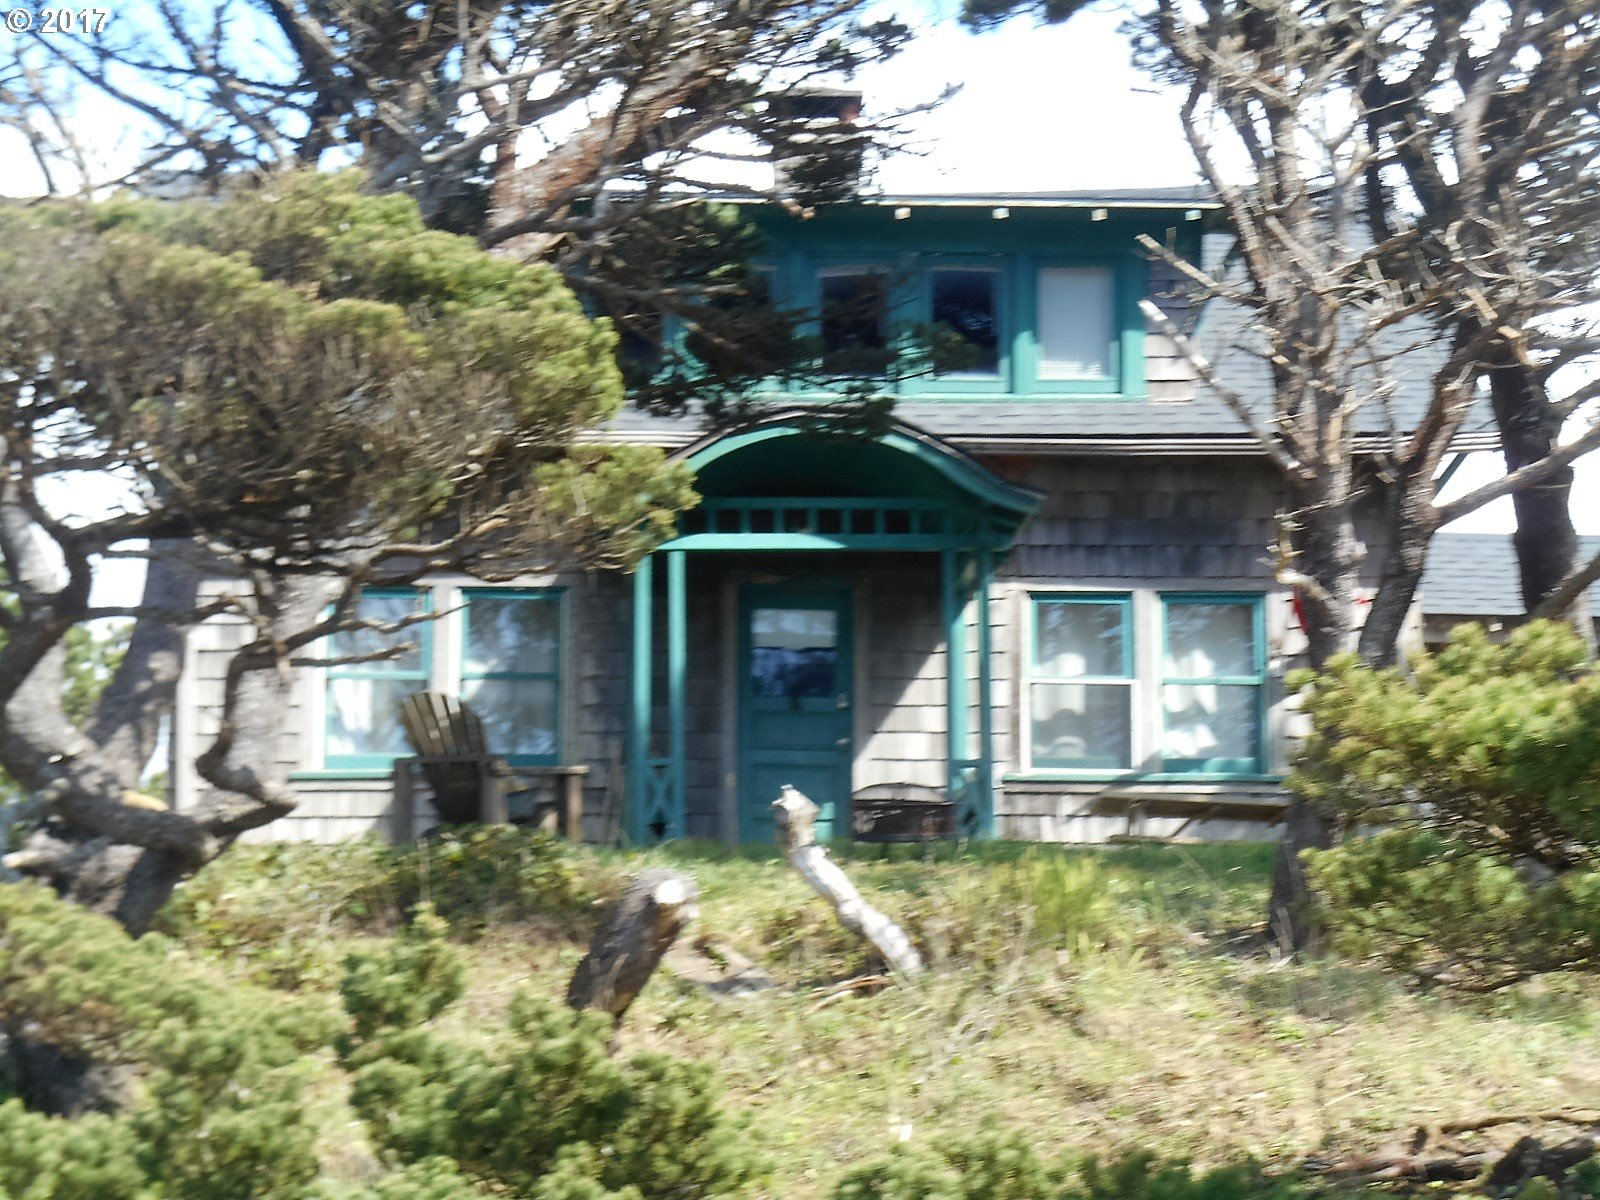 892 sq. ft 2 bedrooms 1 bathrooms  House For Sale, Rockaway Beach, OR